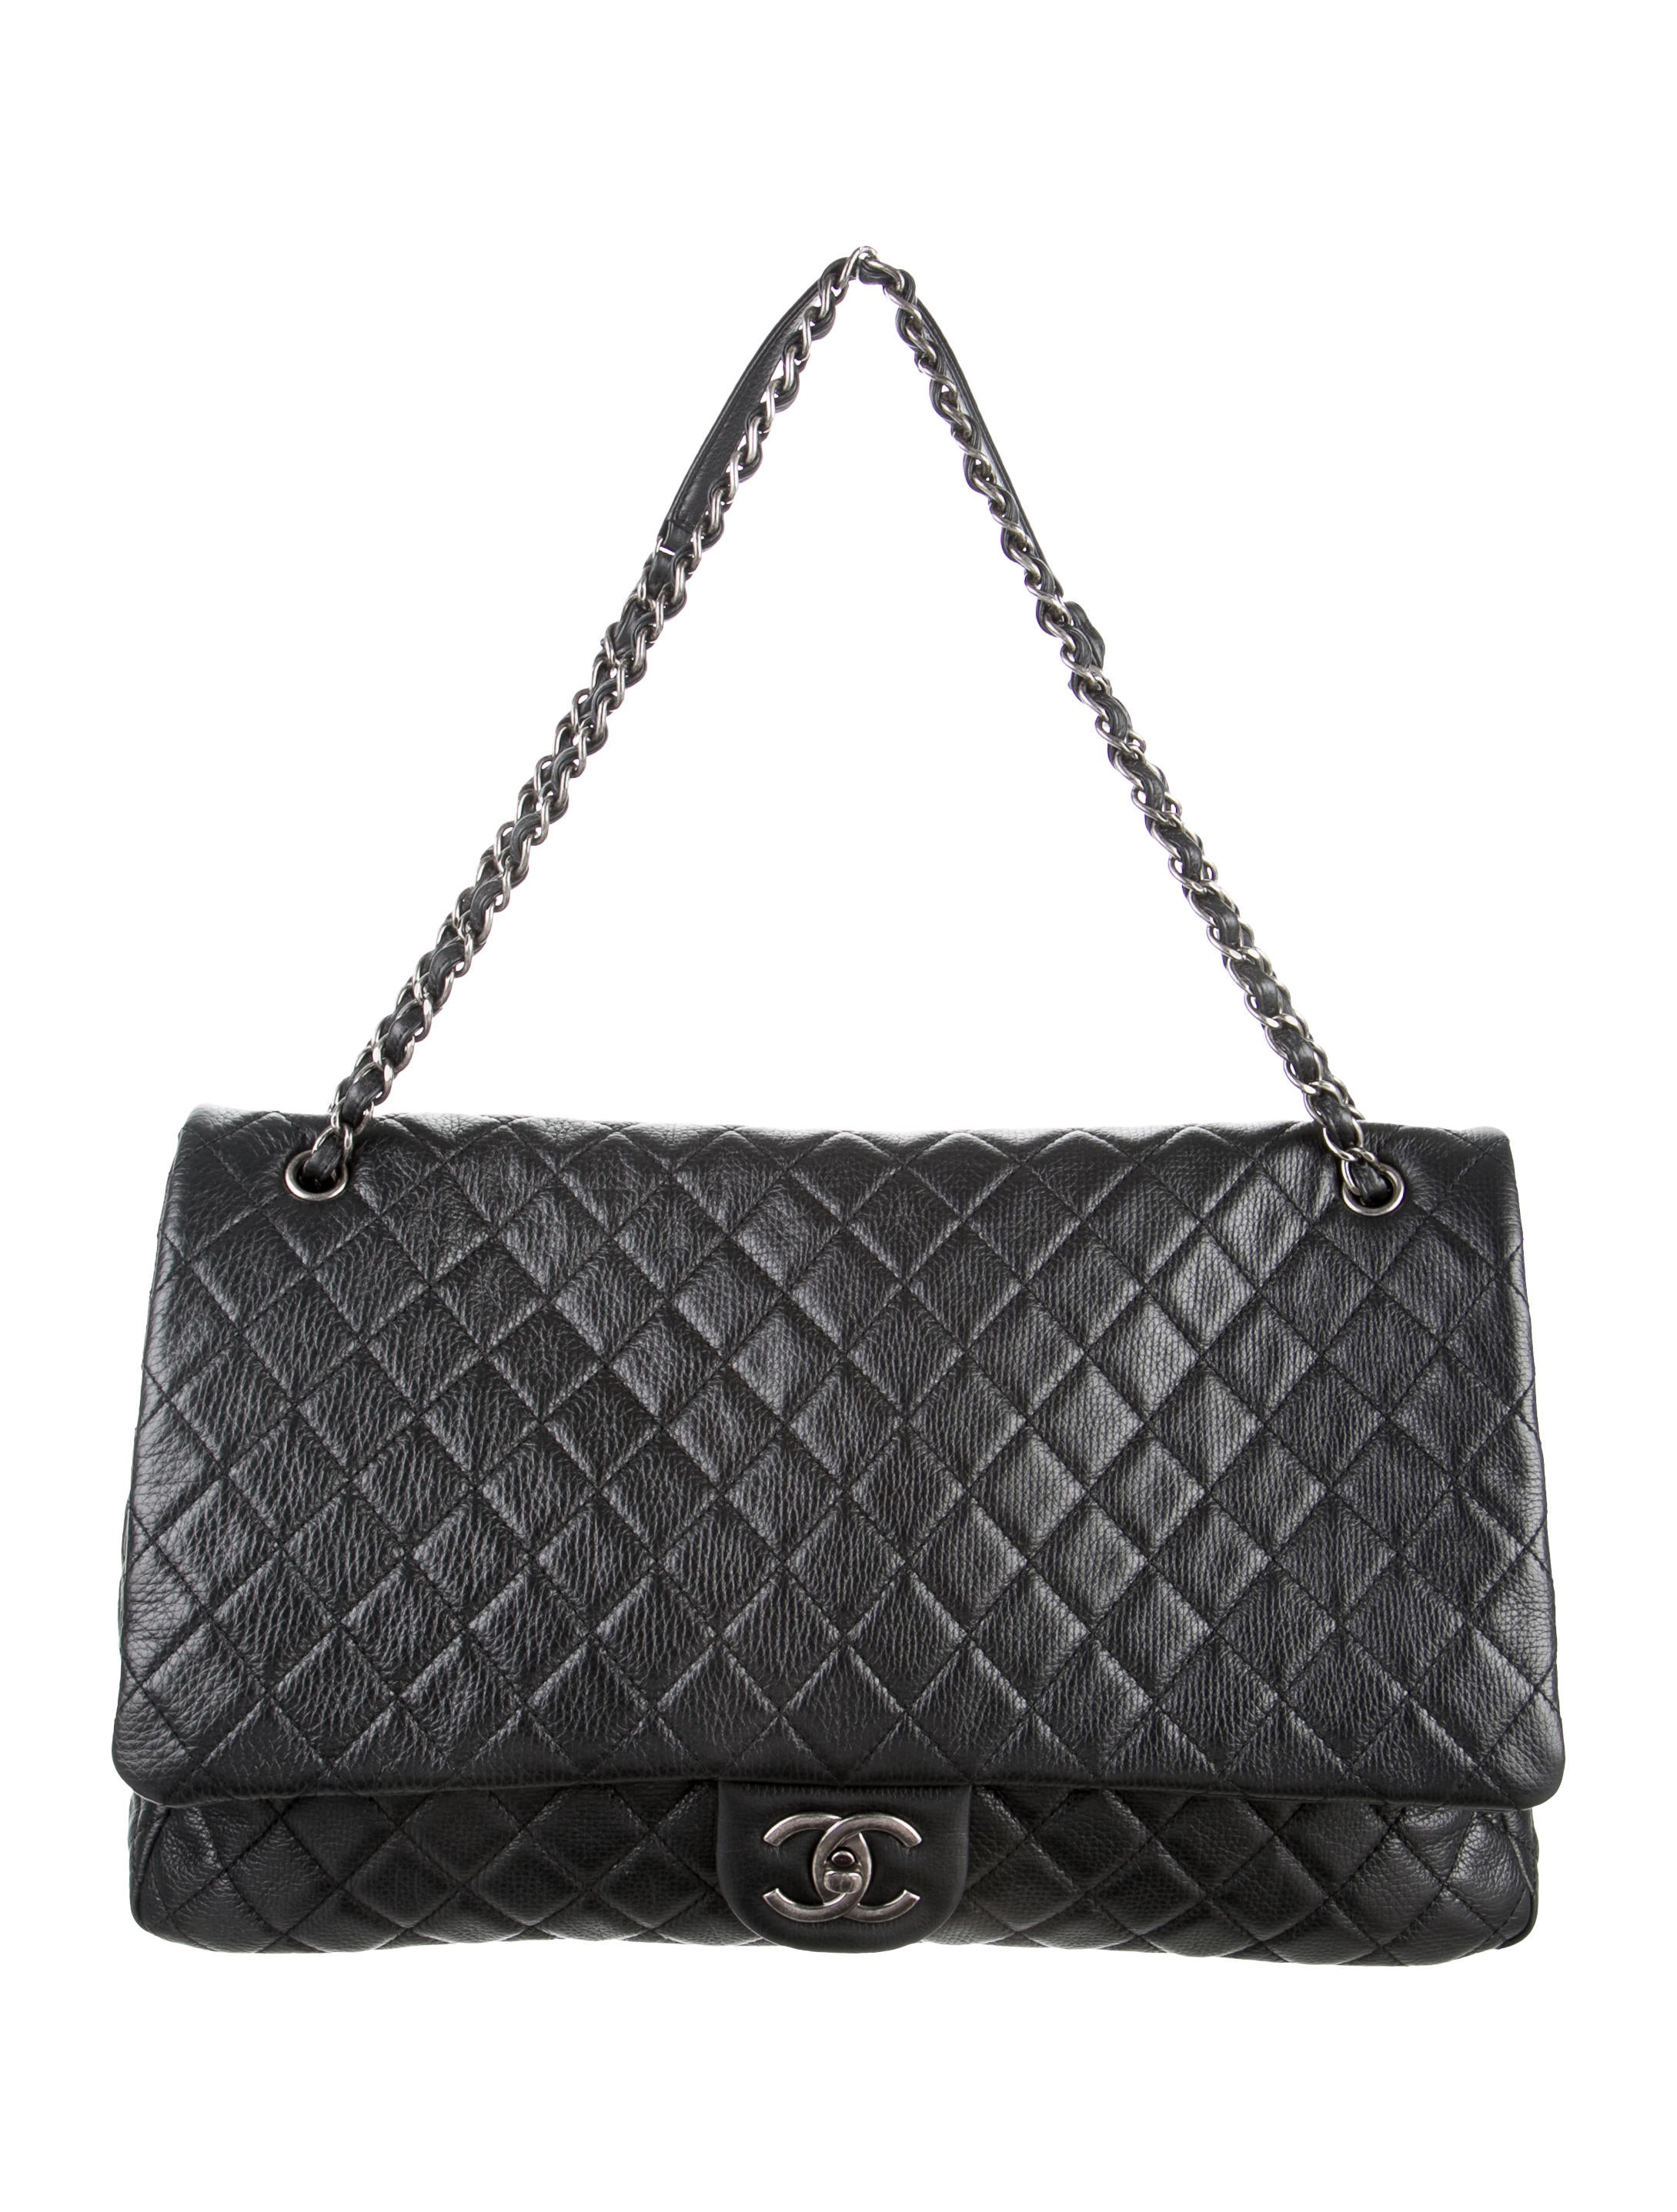 b85e34cef428 Chanel XXL Airline Classic Flap Bag - Handbags - CHA109951